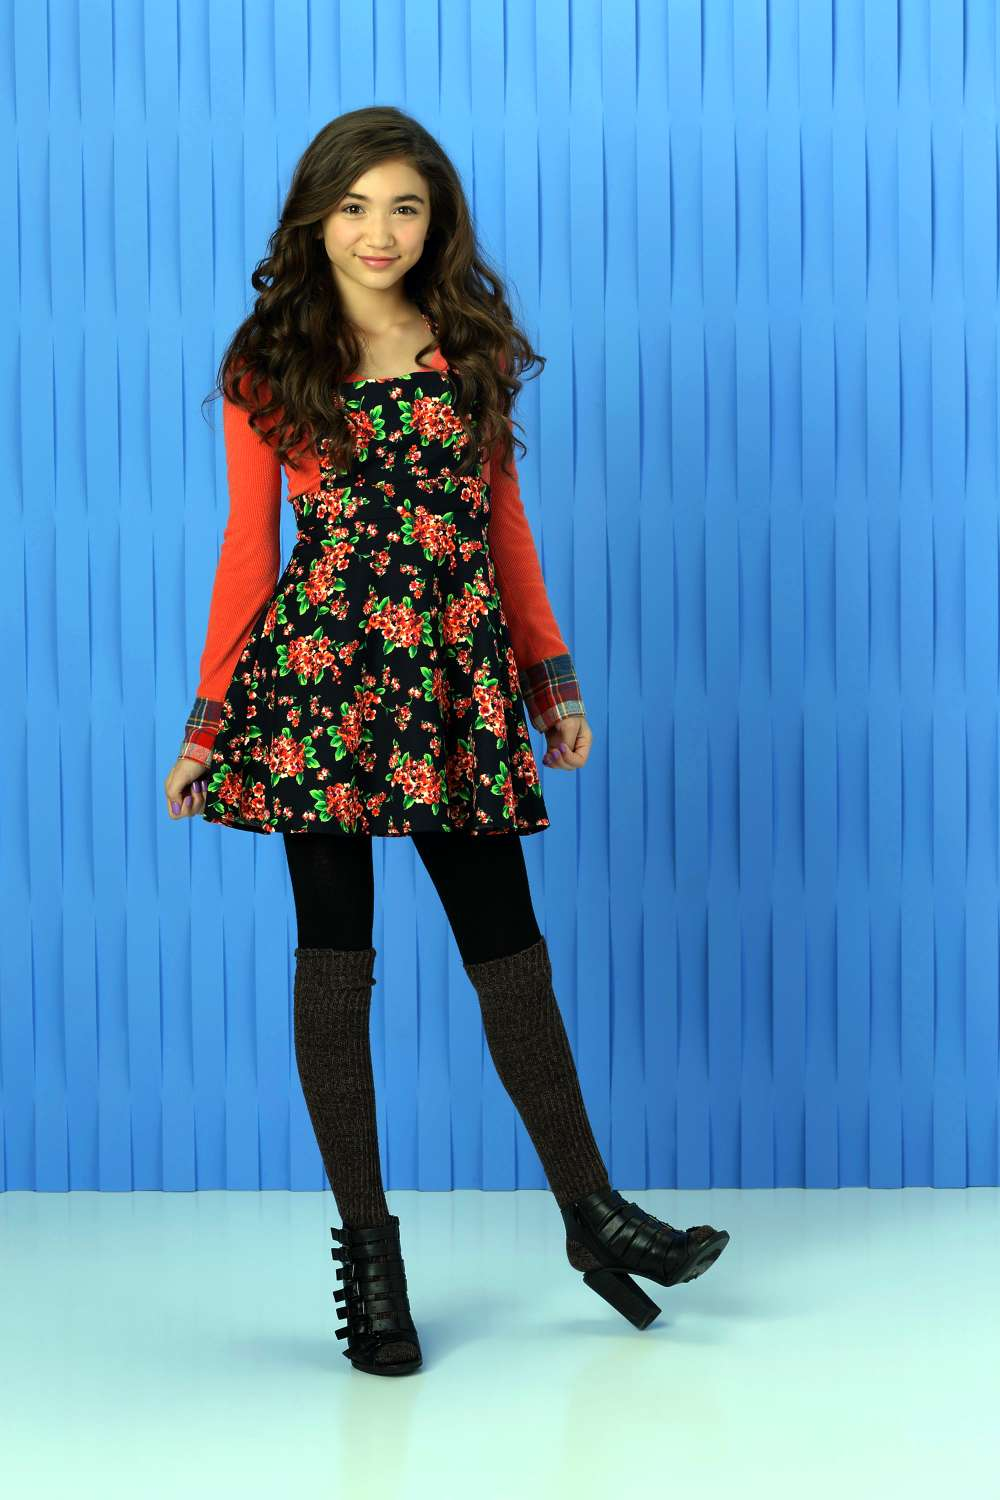 Disney Channel u0026quot;Girl Meets Worldu0026quot; Star Rowan Blanchard Identifies As Queer - J-14